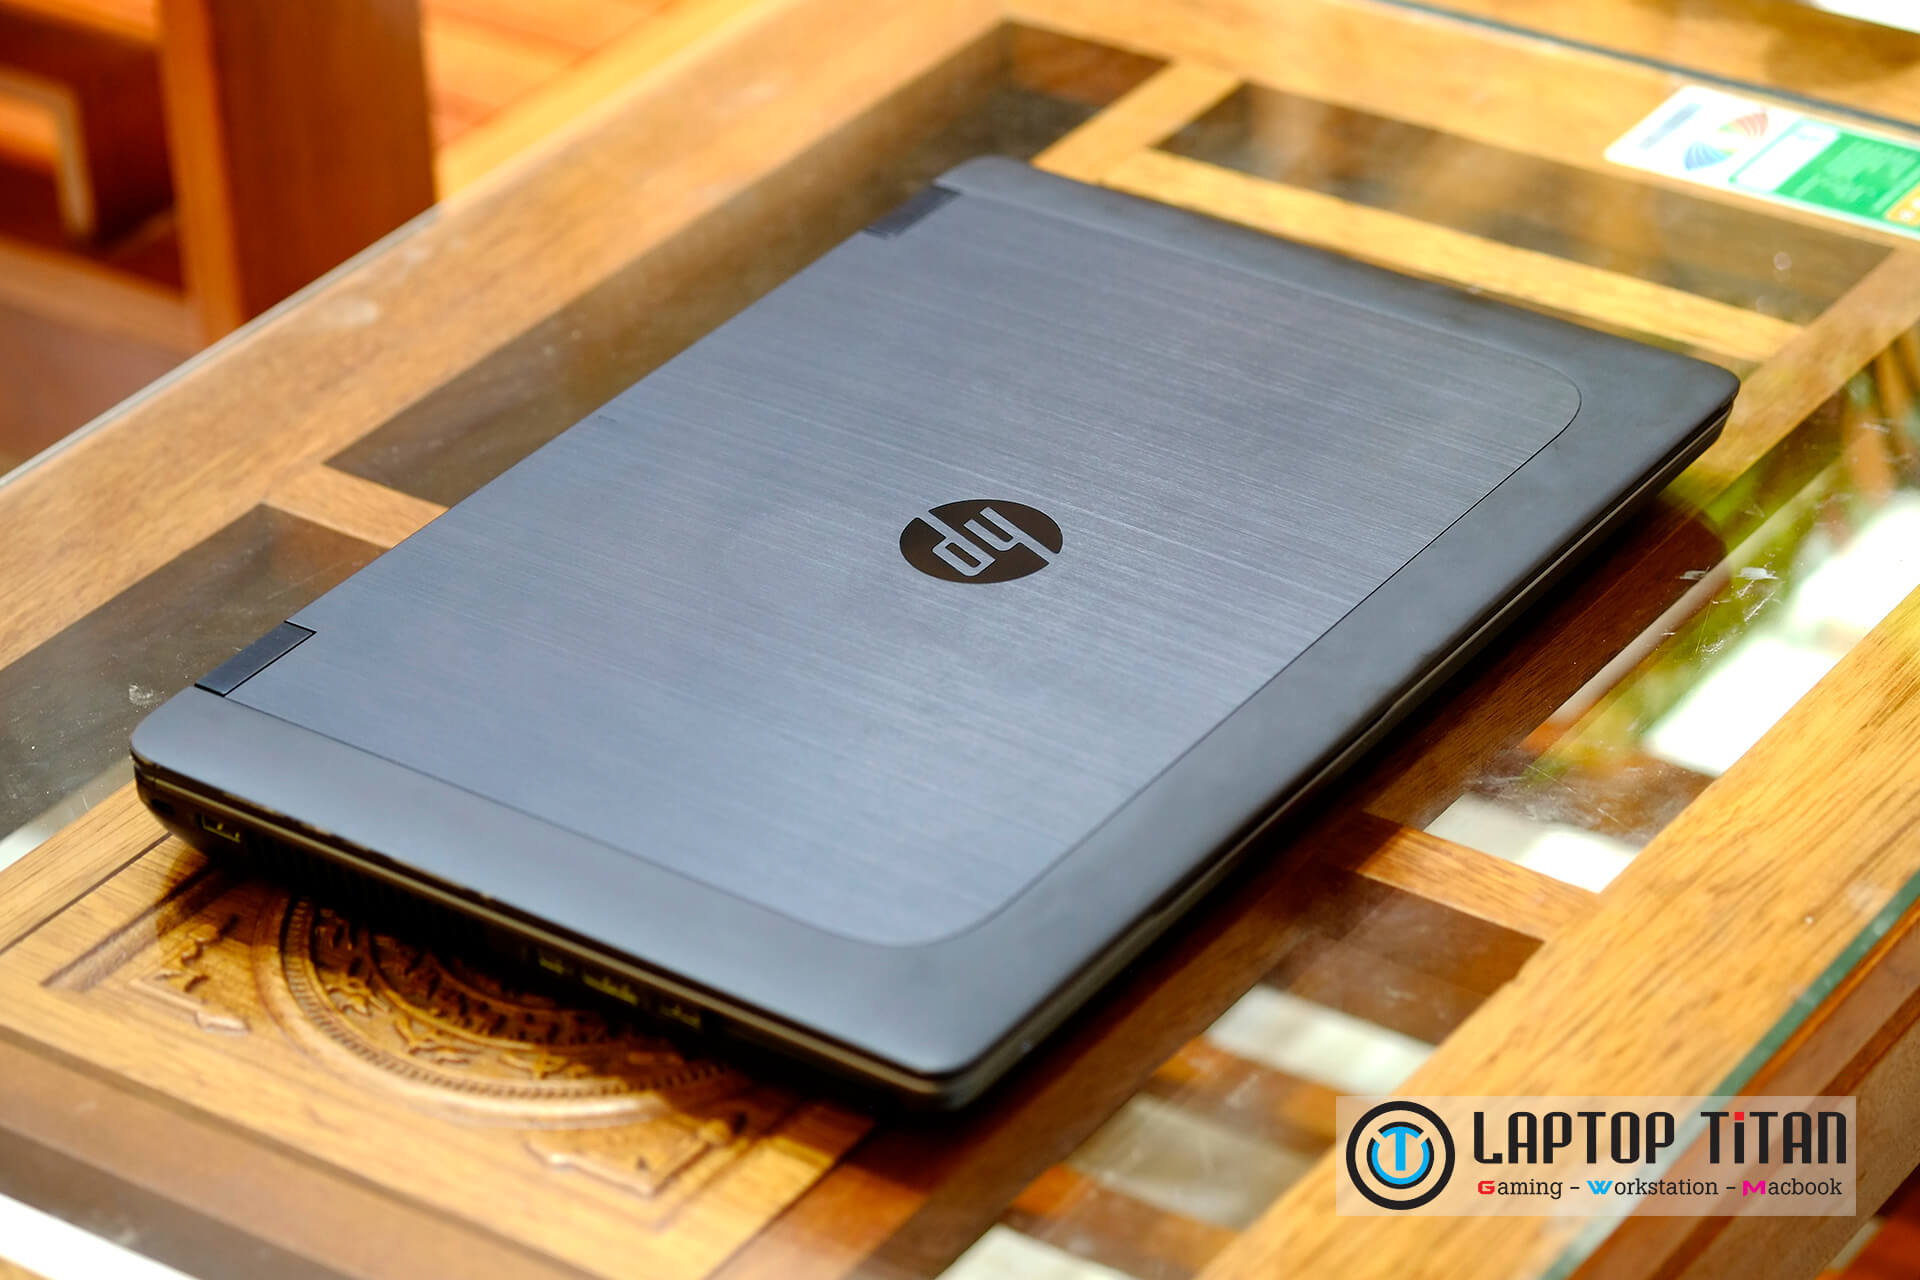 HP Zbook 15 G2 Core i7 4800MQ / 8GB / 128GB + 500GB / nVidia Quadro K1100M / 15. 14827142_HP-Zbook-15-G2-6